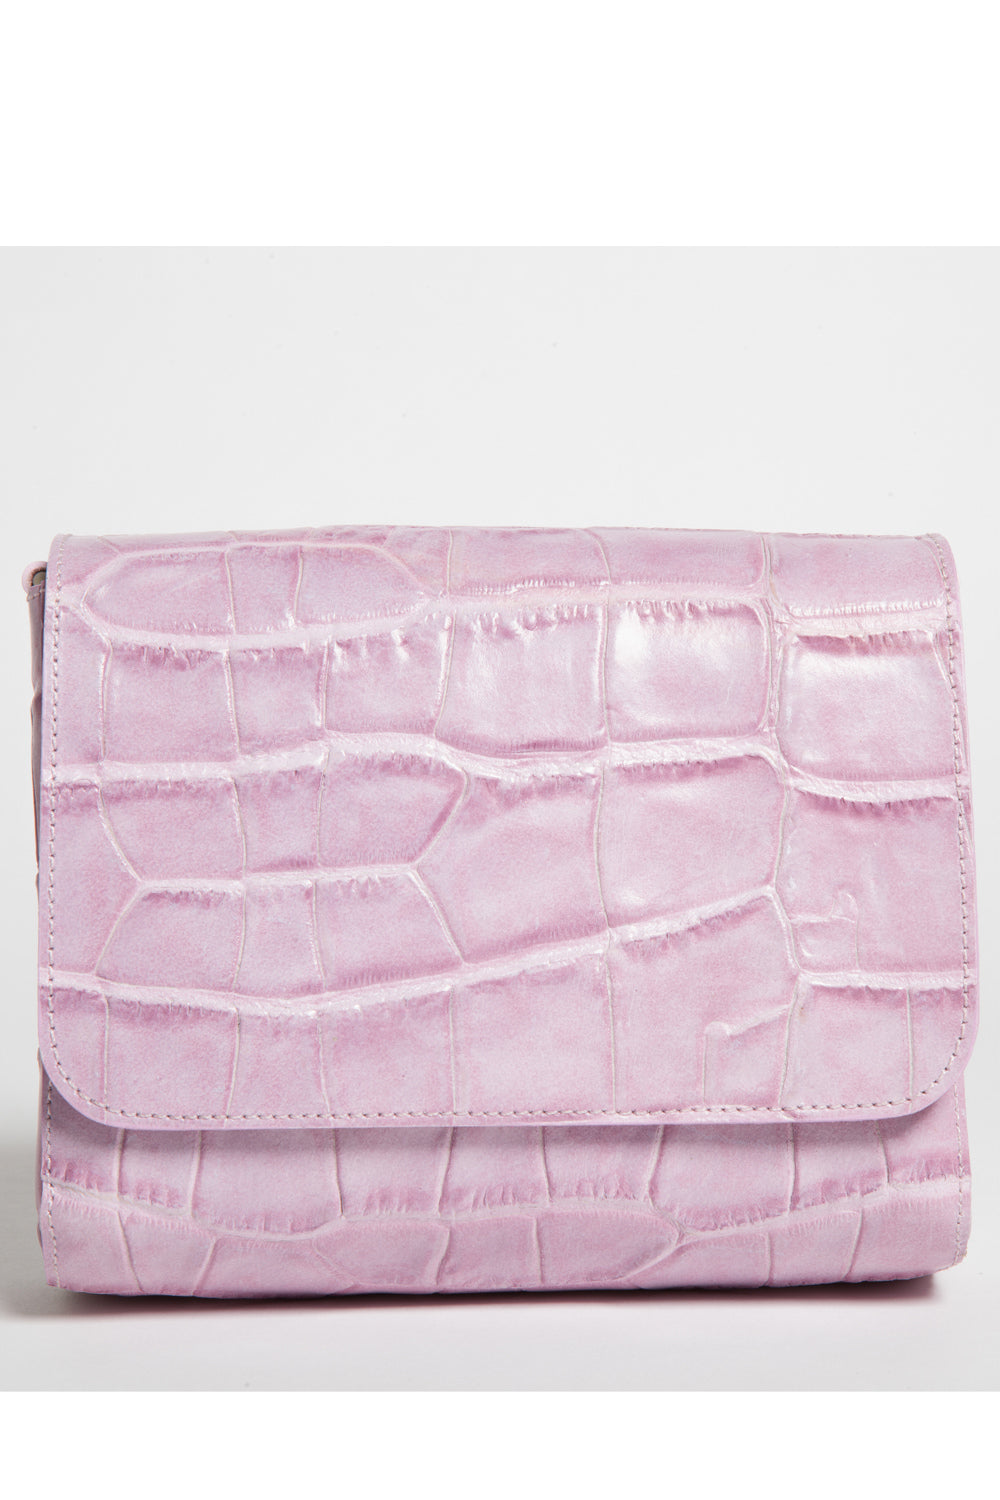 'Gema' Small Shoulder Bag in Sweet Lilac, Croc-Emboss Leather | Mel Boteri | Clutch View